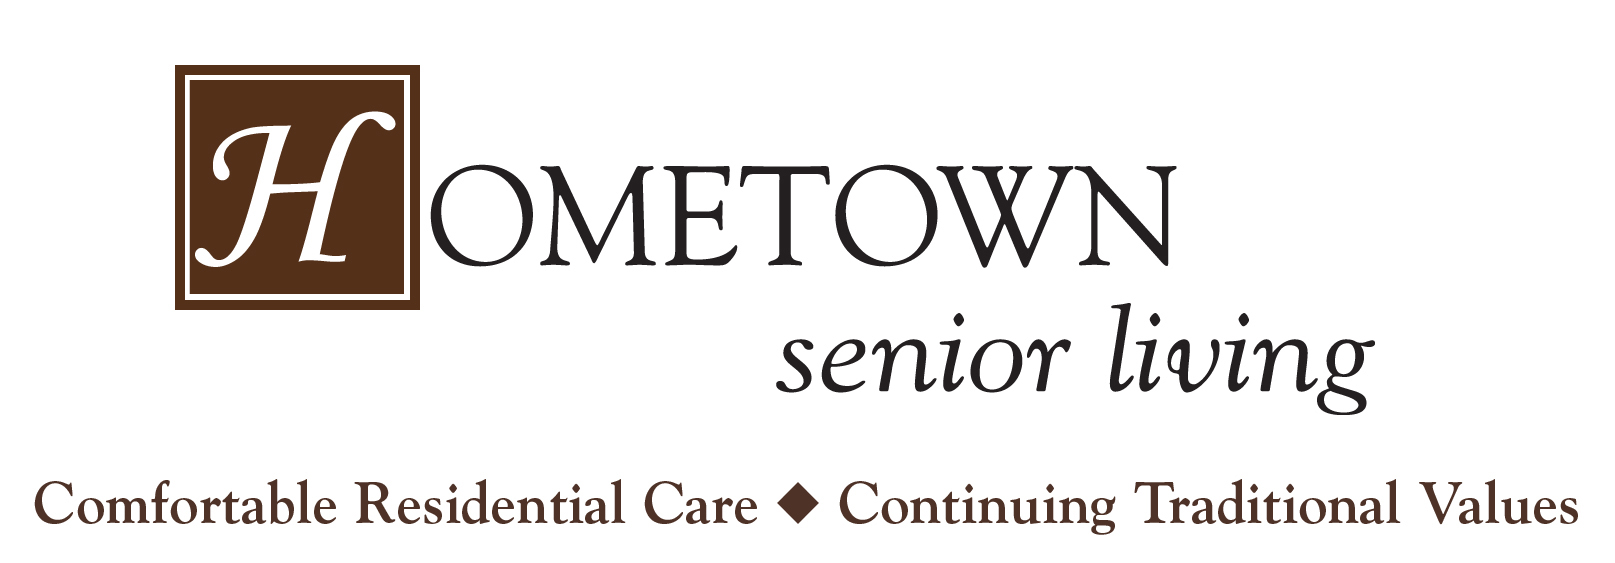 Minnesota Assisted Living & Senior Living, Hometown Senior Living Woodbury MN